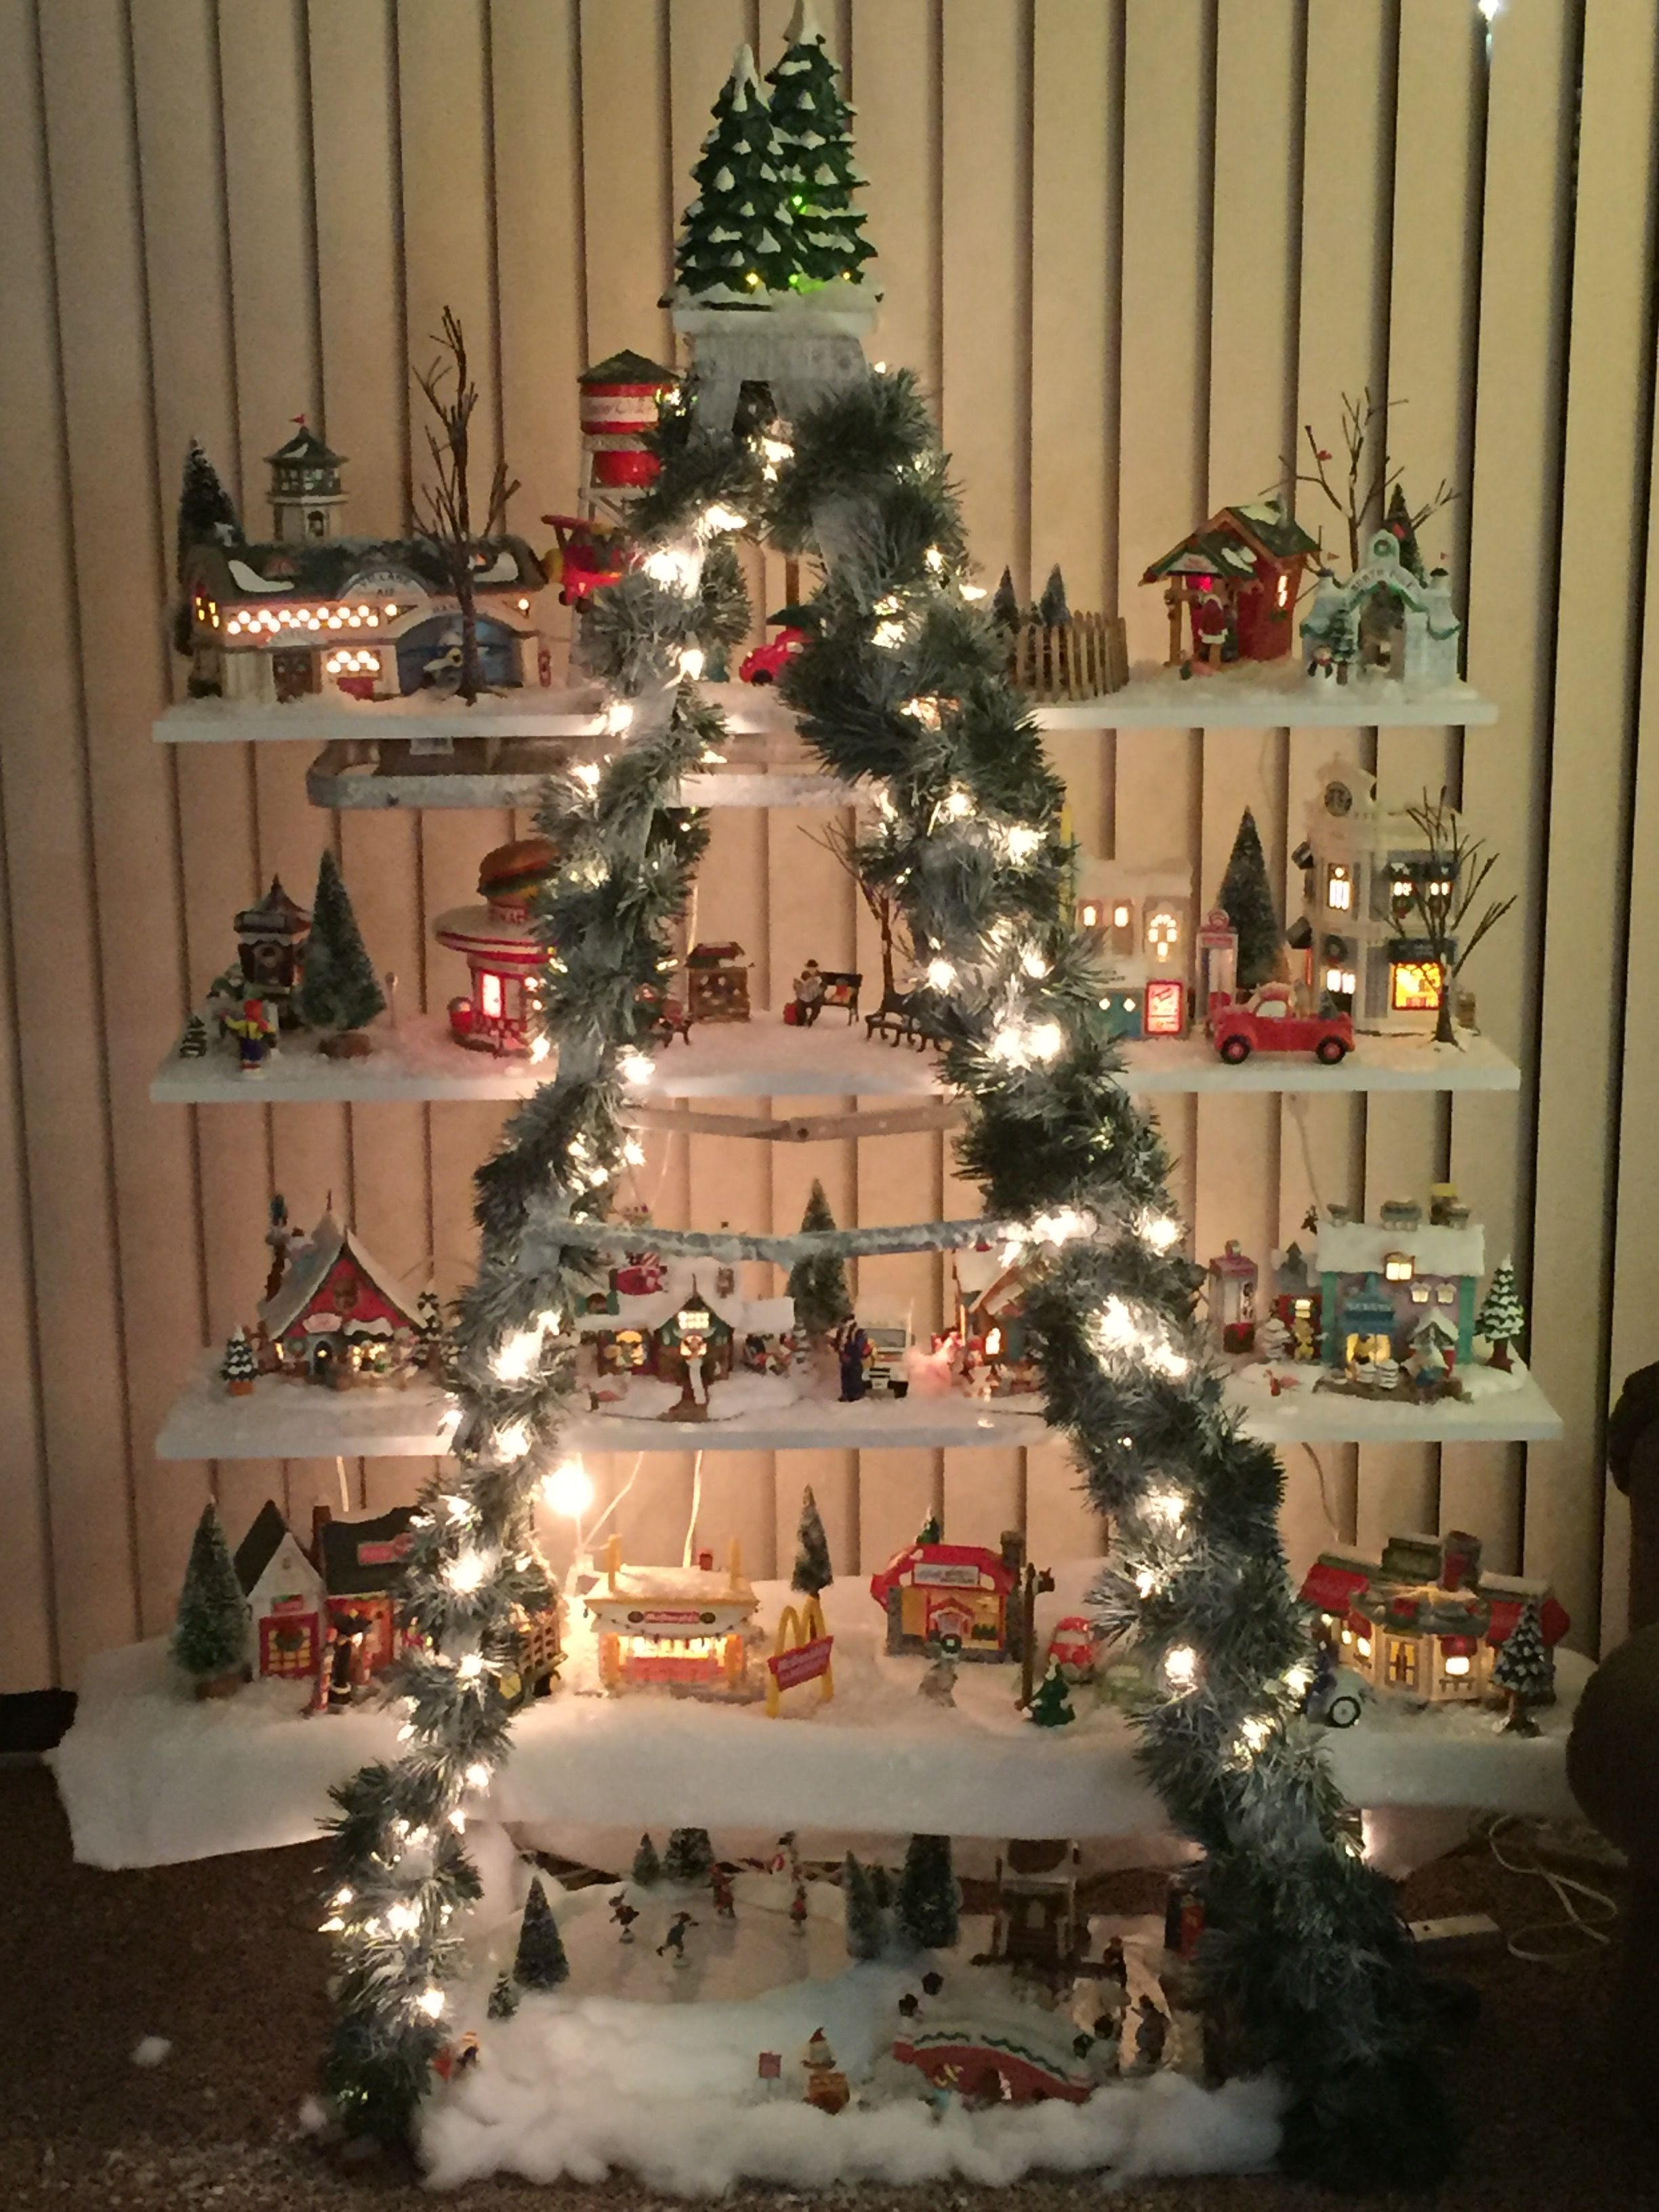 Great Way To Display Your Snow Village In A Small Space So Easy To Make With A Diy Christmas Village Displays Diy Christmas Village Christmas Village Display